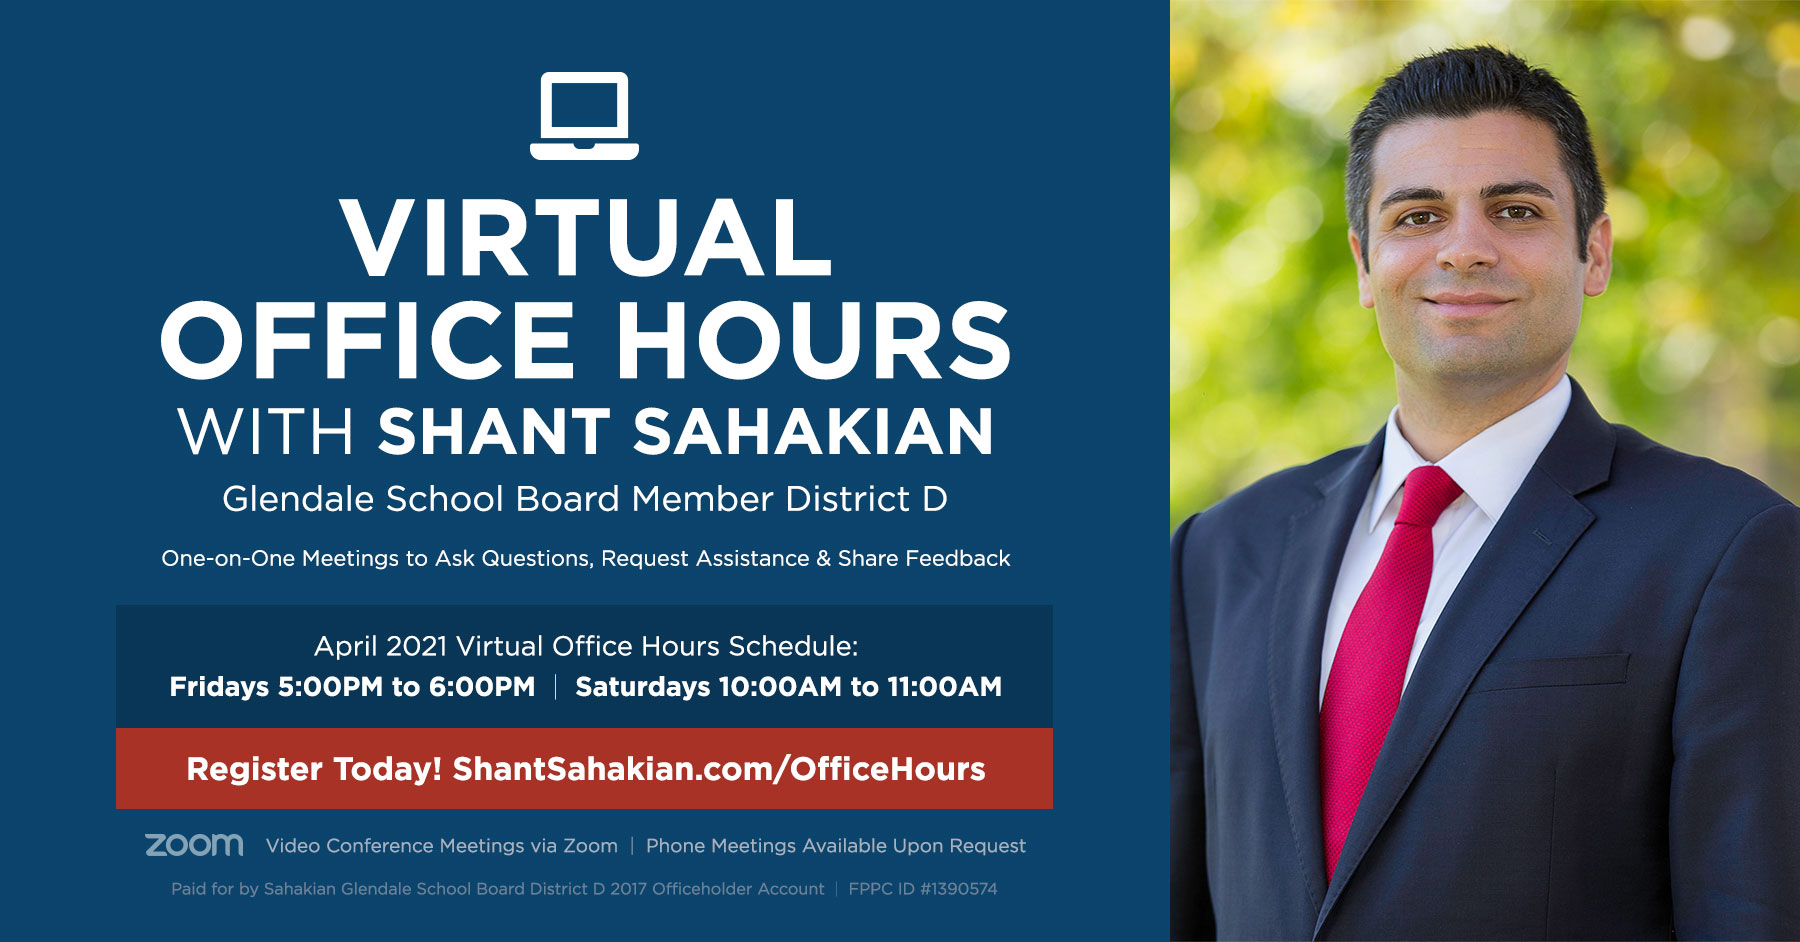 Virtual Office Hours with Glendale School Board Member Shant Sahakian April 2021